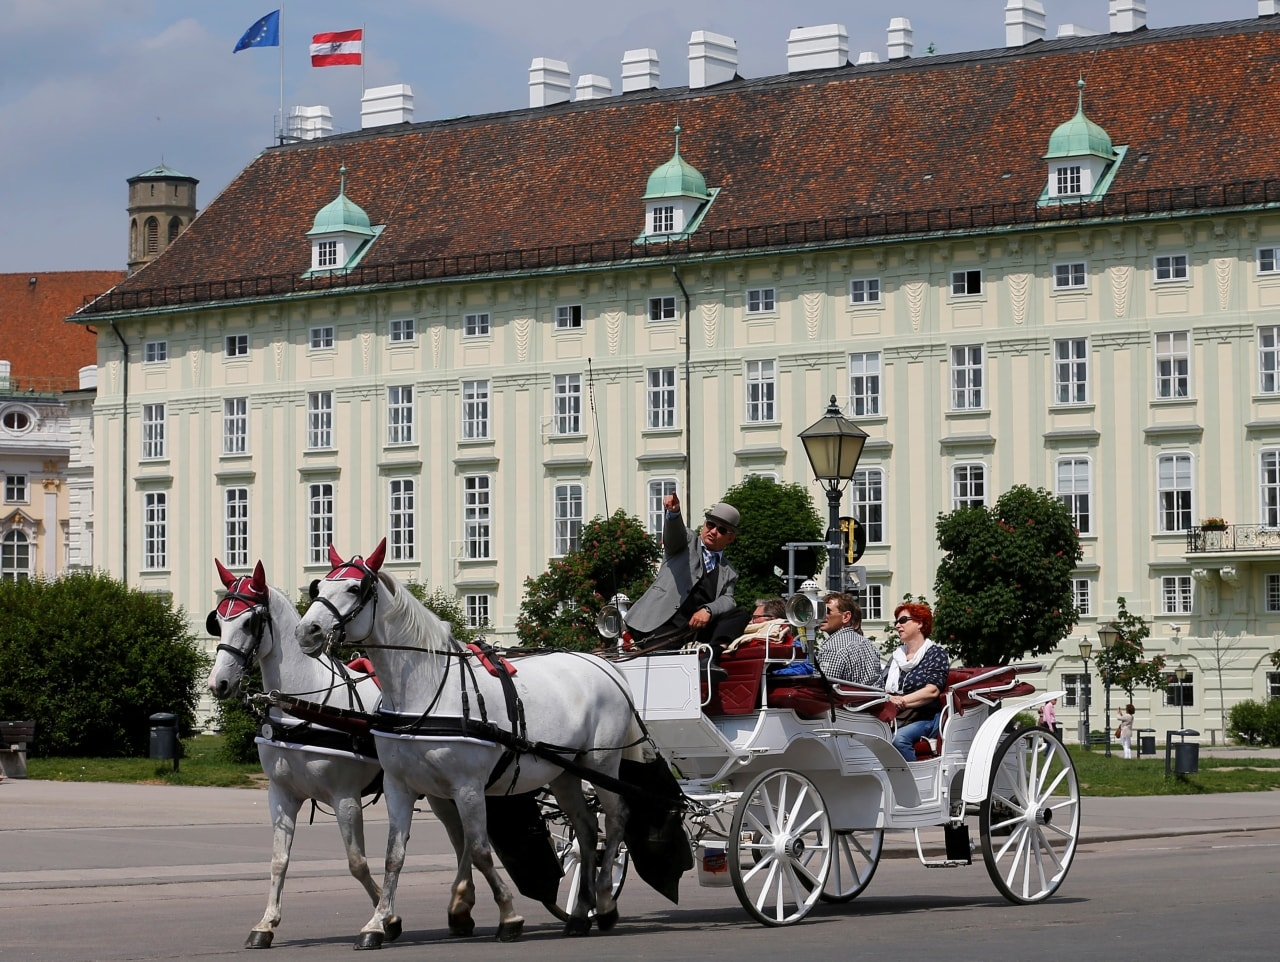 The Austrian capital Vienna has topped Mercer's index of most liveable cities for the 10th year in a row. Known by tourists for its imperial past, gilded palaces and classical music, the city of 1.9 million is also nicknamed